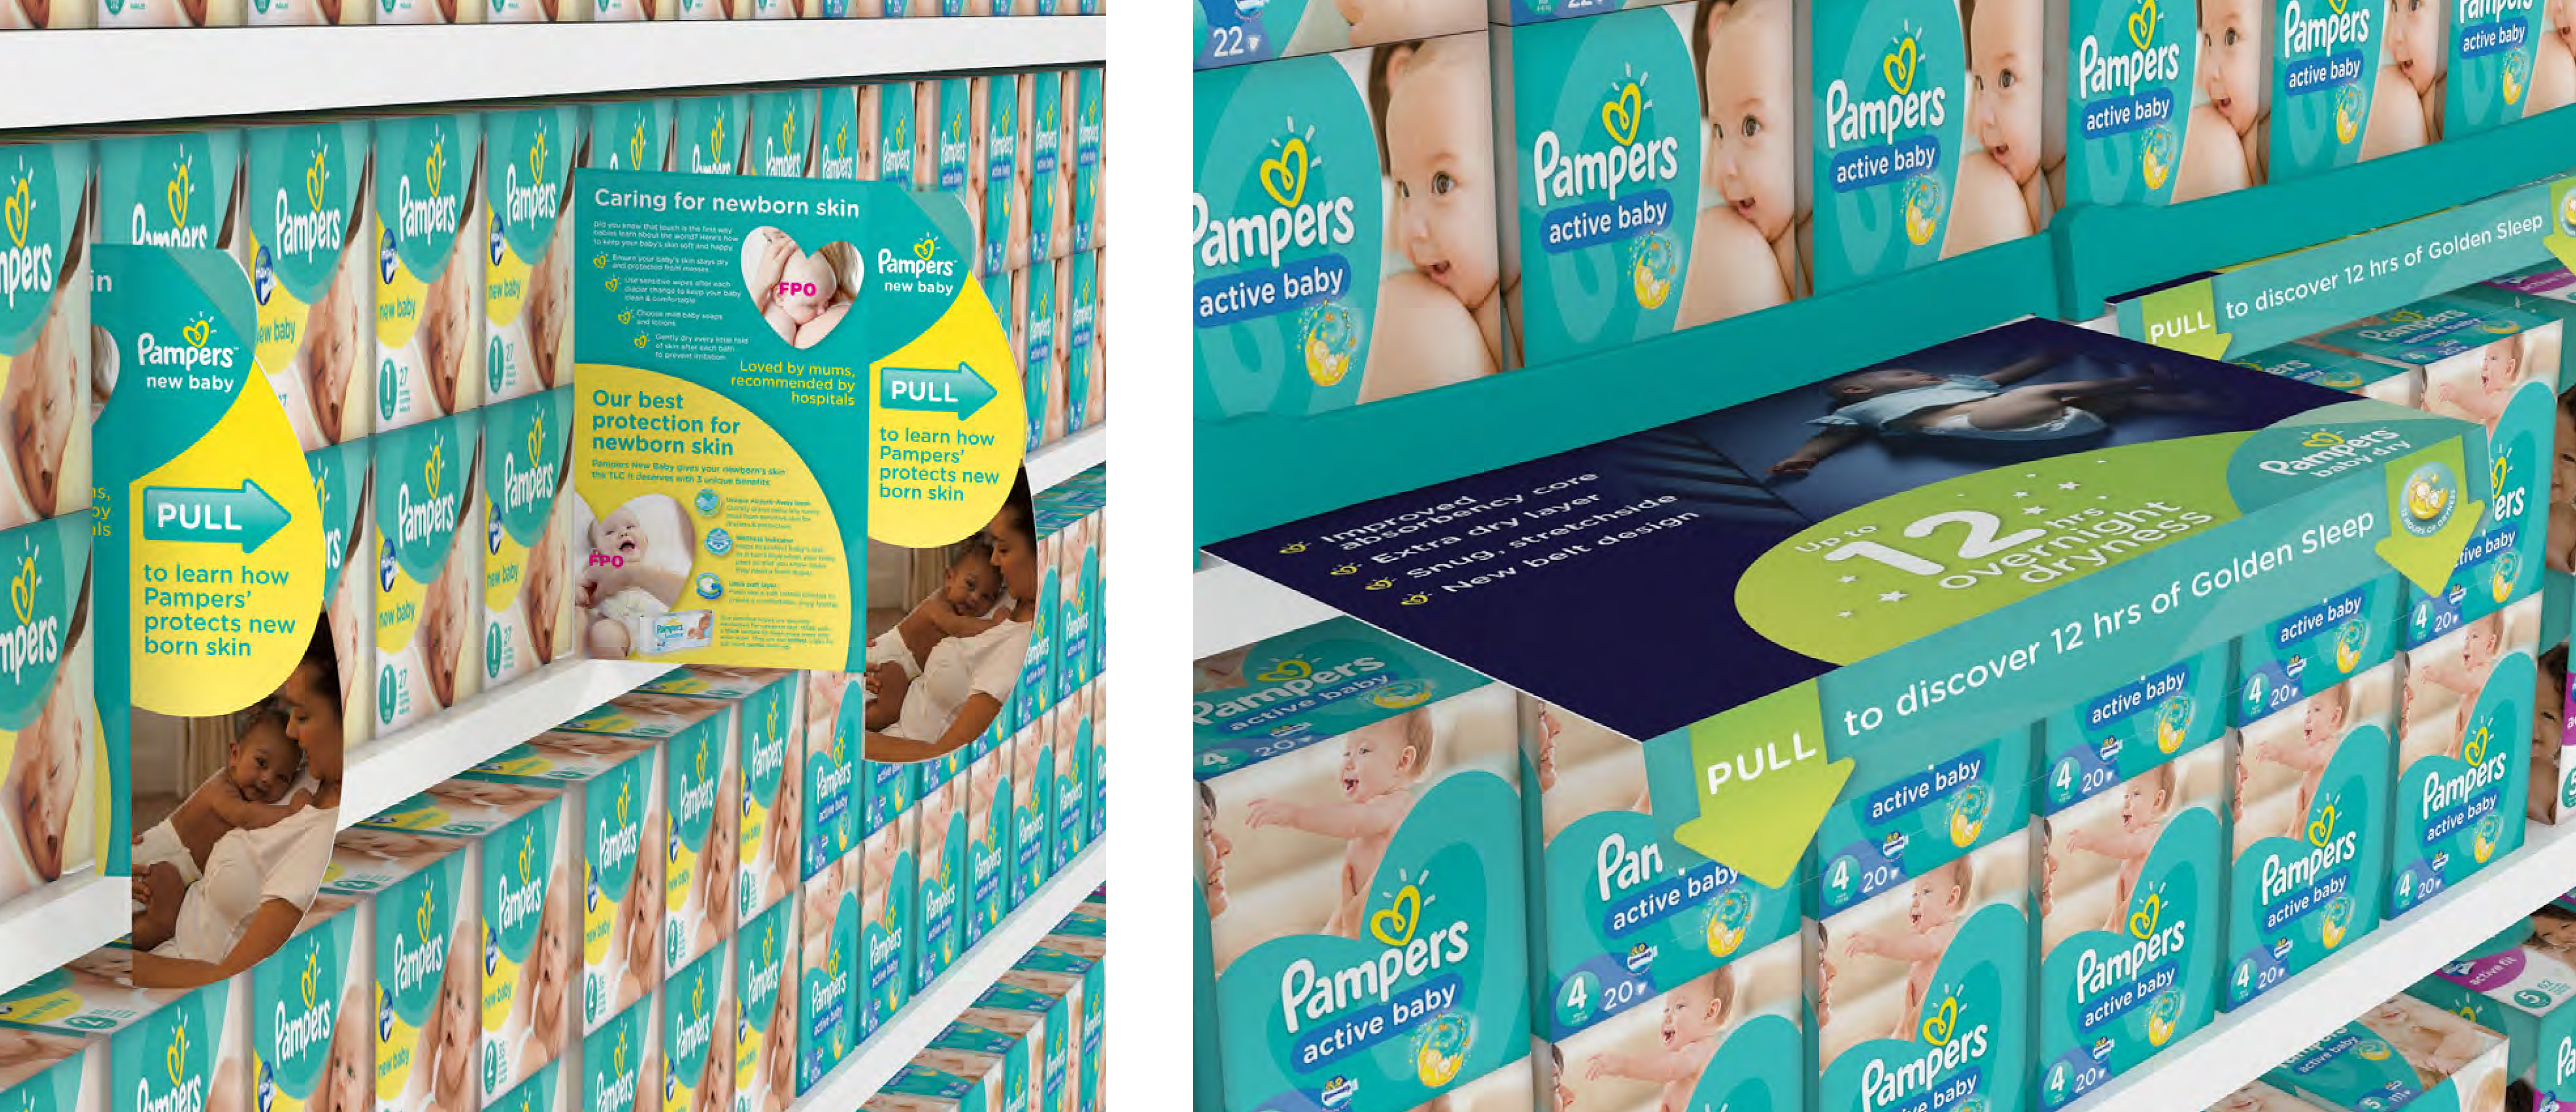 Pampers_07